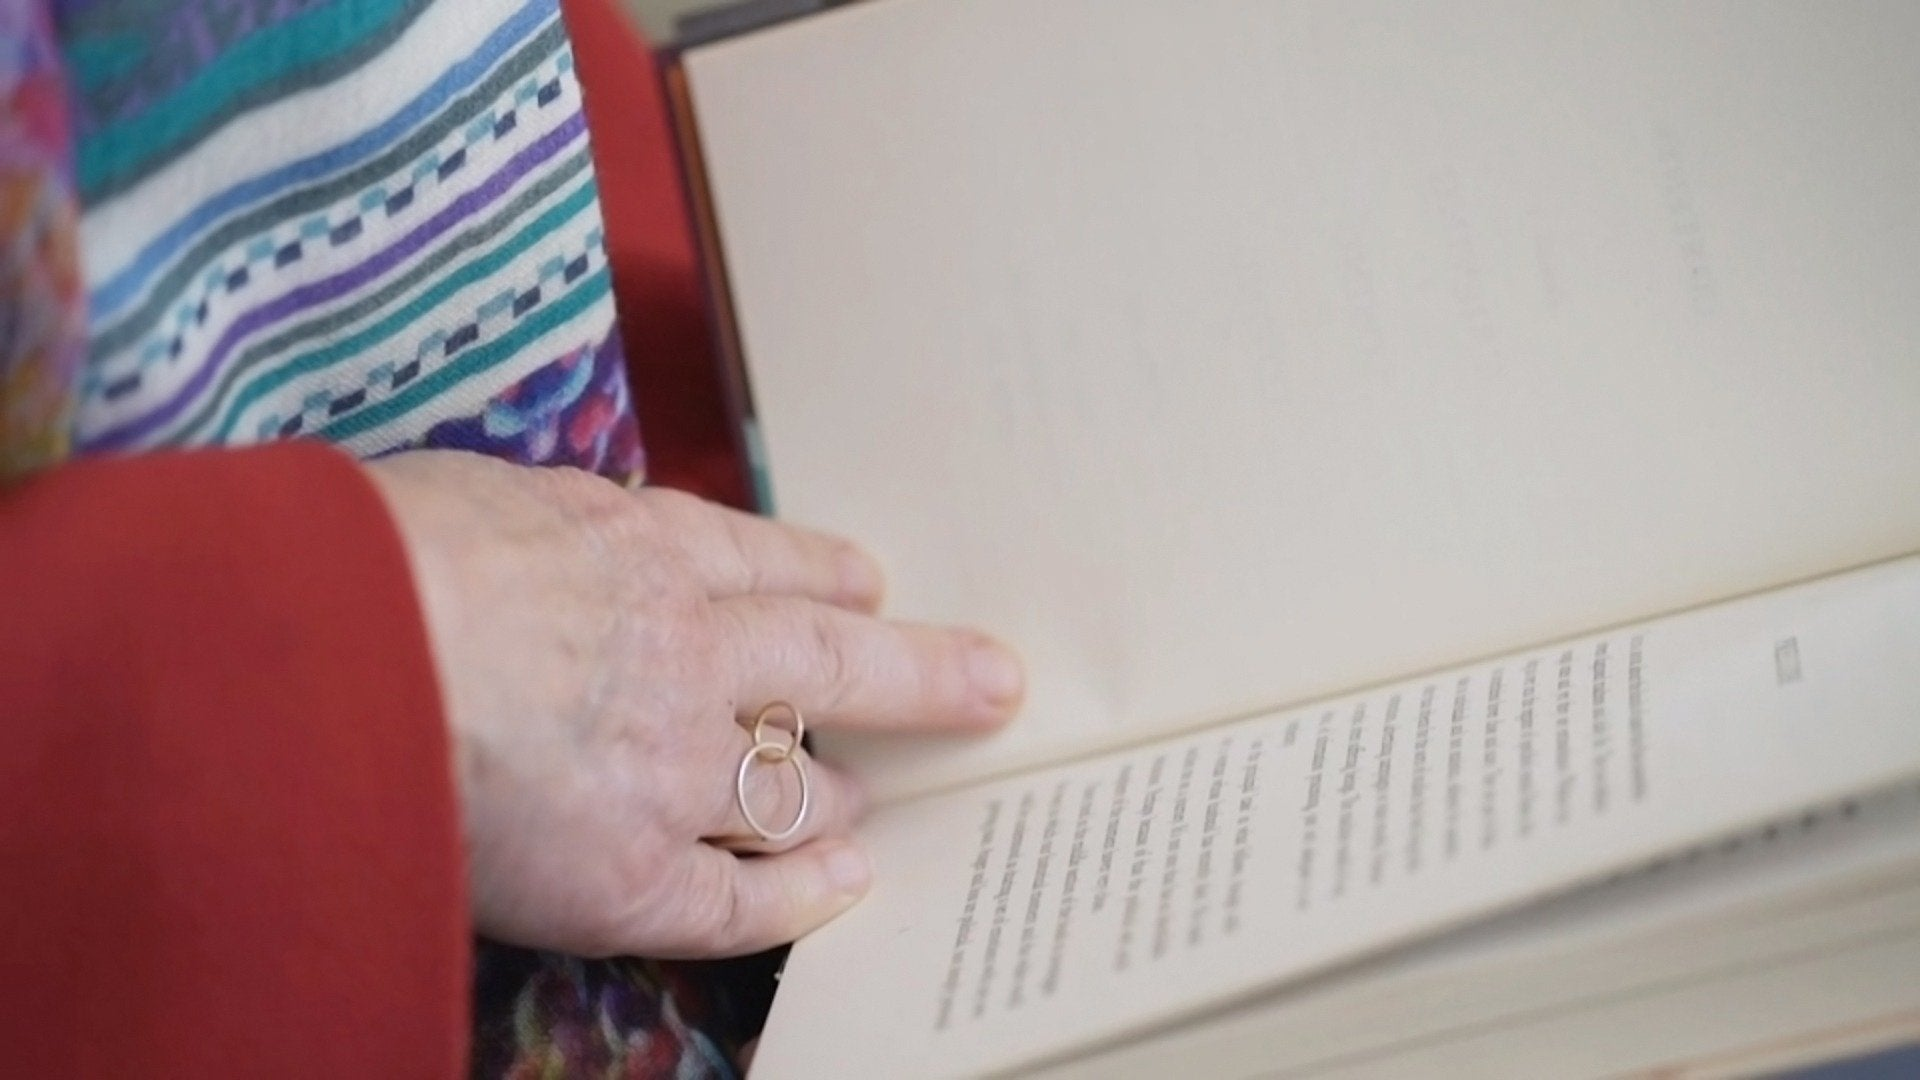 Textual Healing: Can Reading Change Lives?